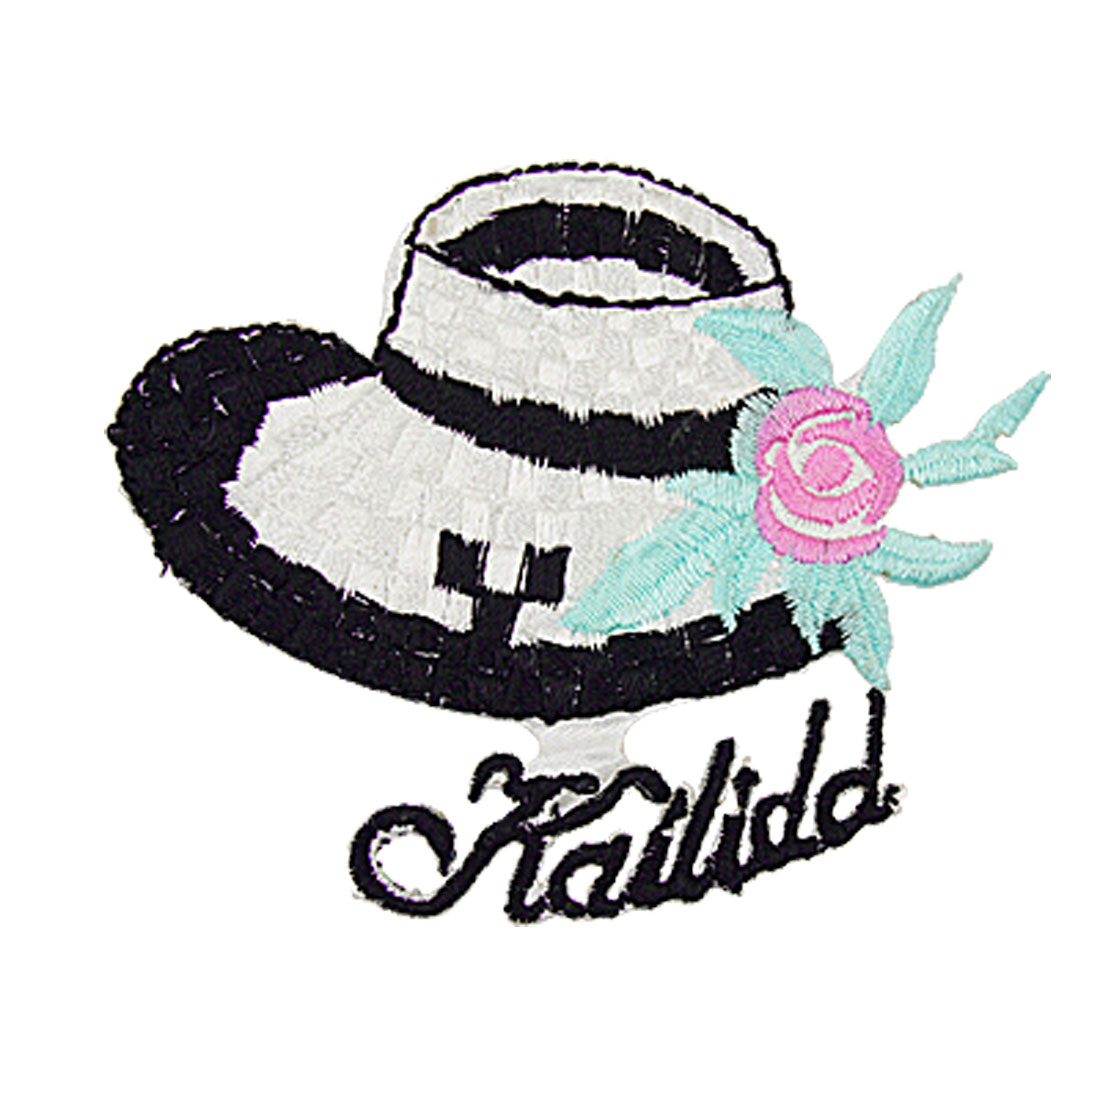 Flower Hat Design Embroidered Stickers Iron On DIY Patch